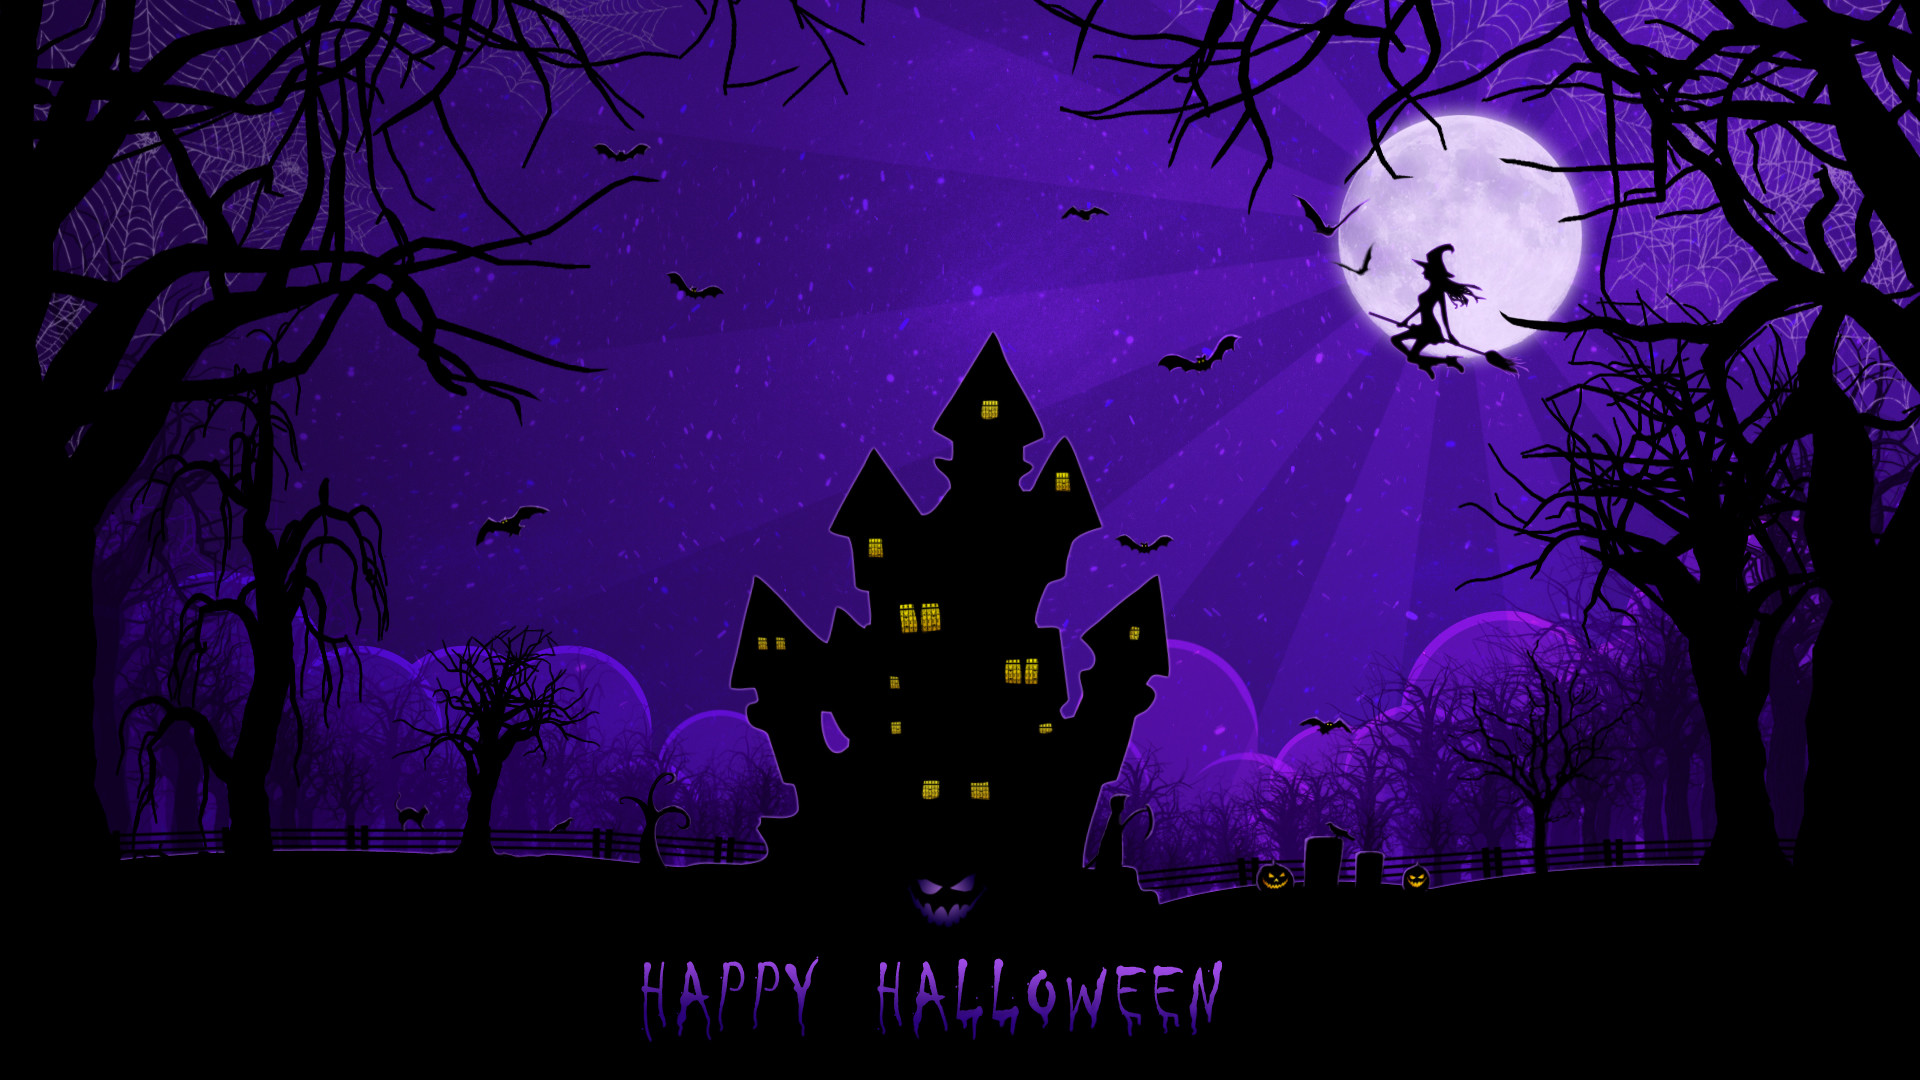 Happy Spooky Halloween. Available in 1920×1080.